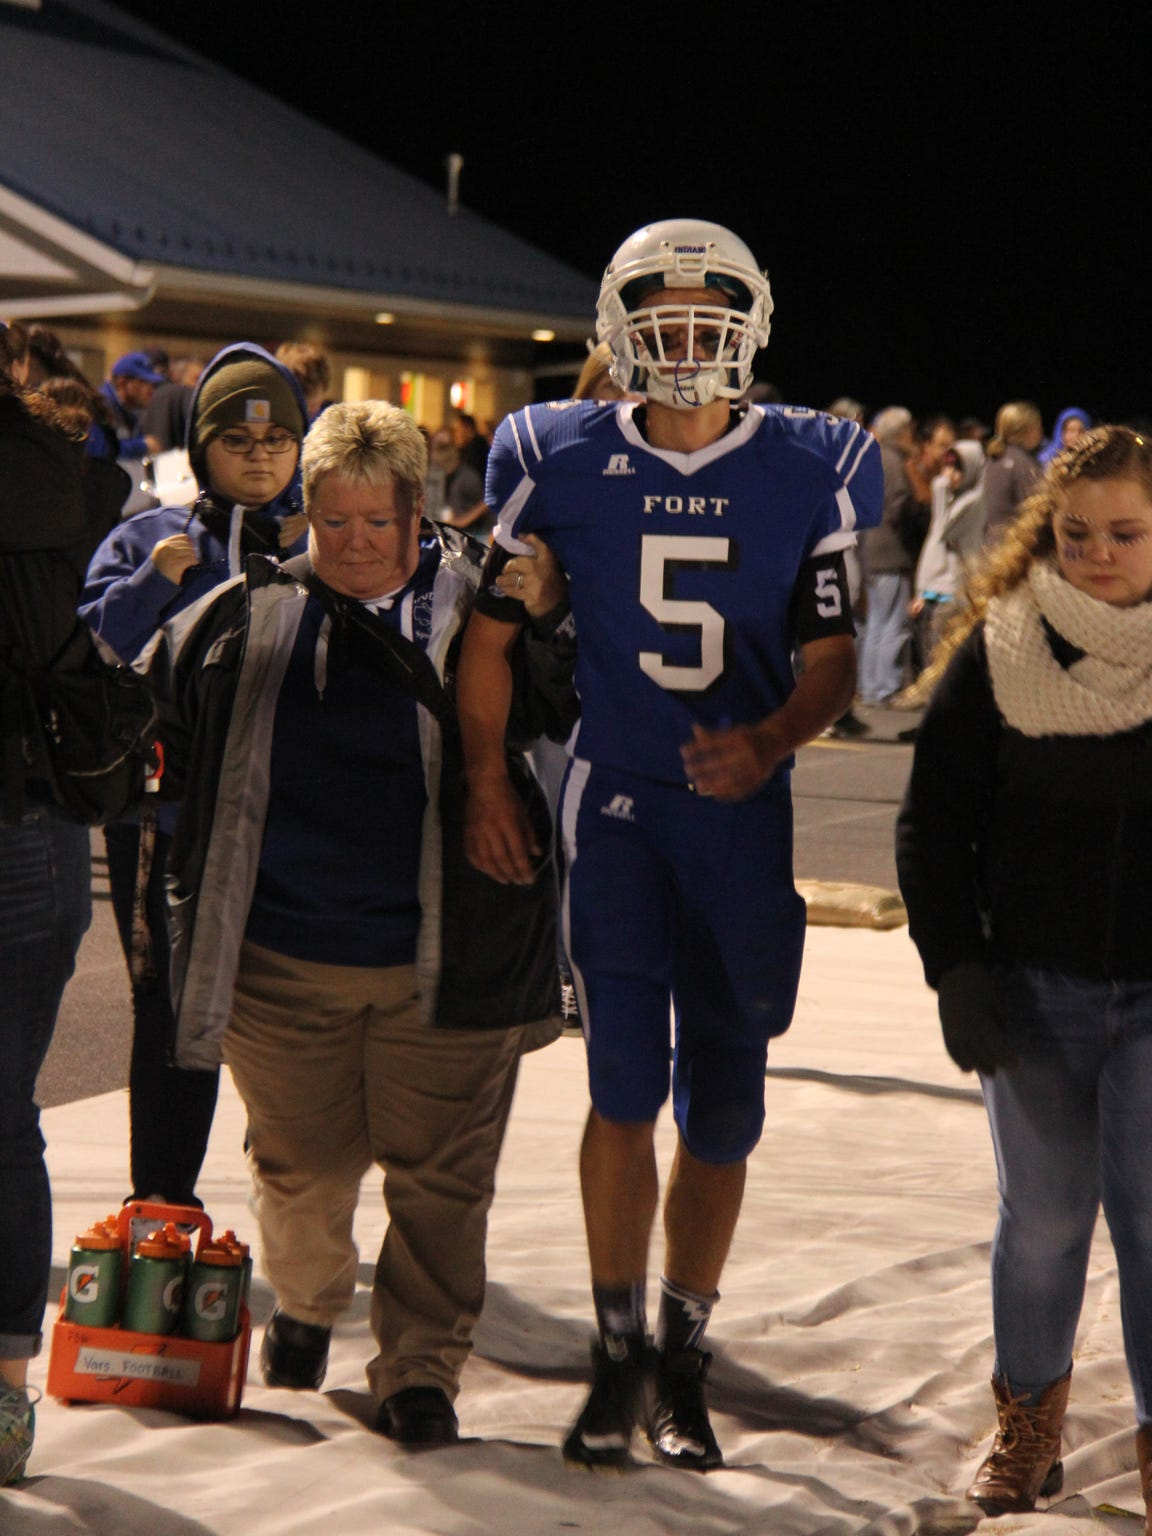 Becky Anhold helps a Fort Defiance football player off the field after injuring himself during a game.